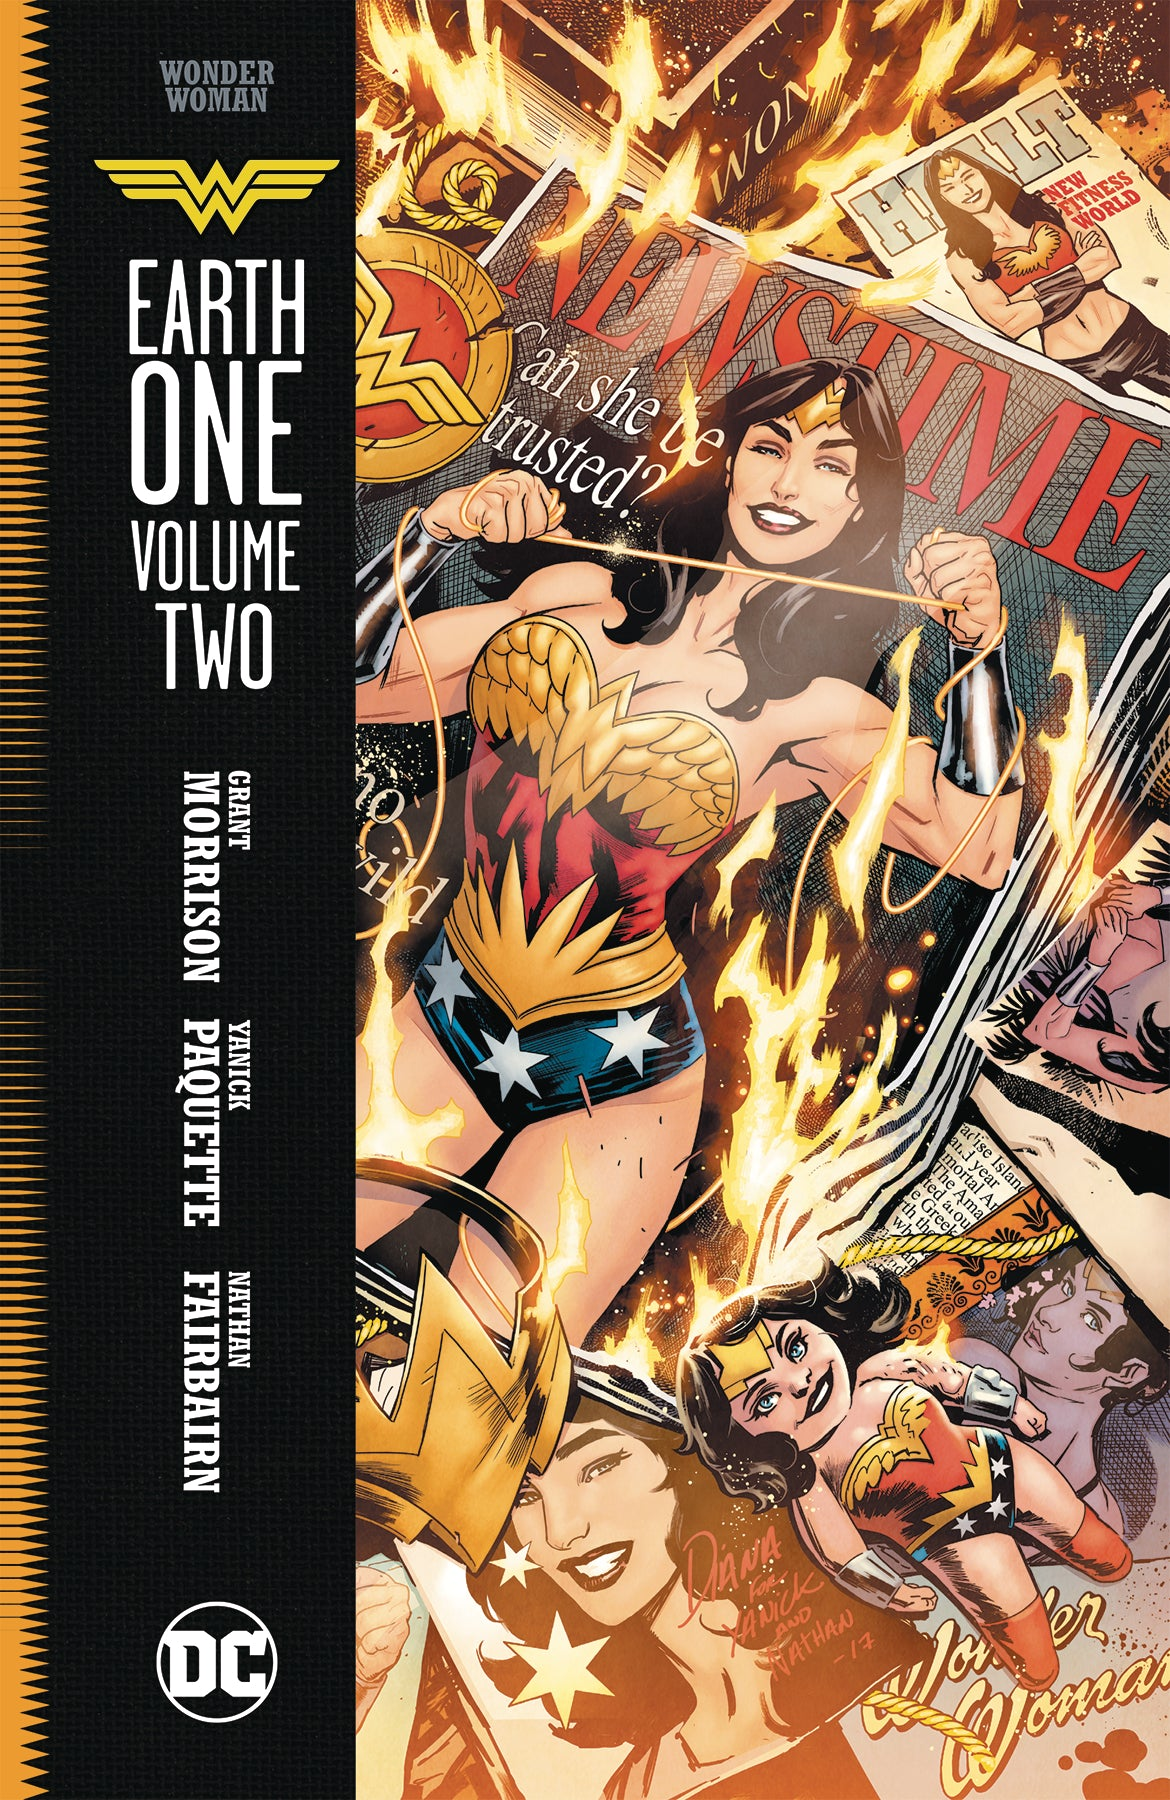 WONDER WOMAN EARTH ONE HC VOL 02 | Game Master's Emporium (The New GME)